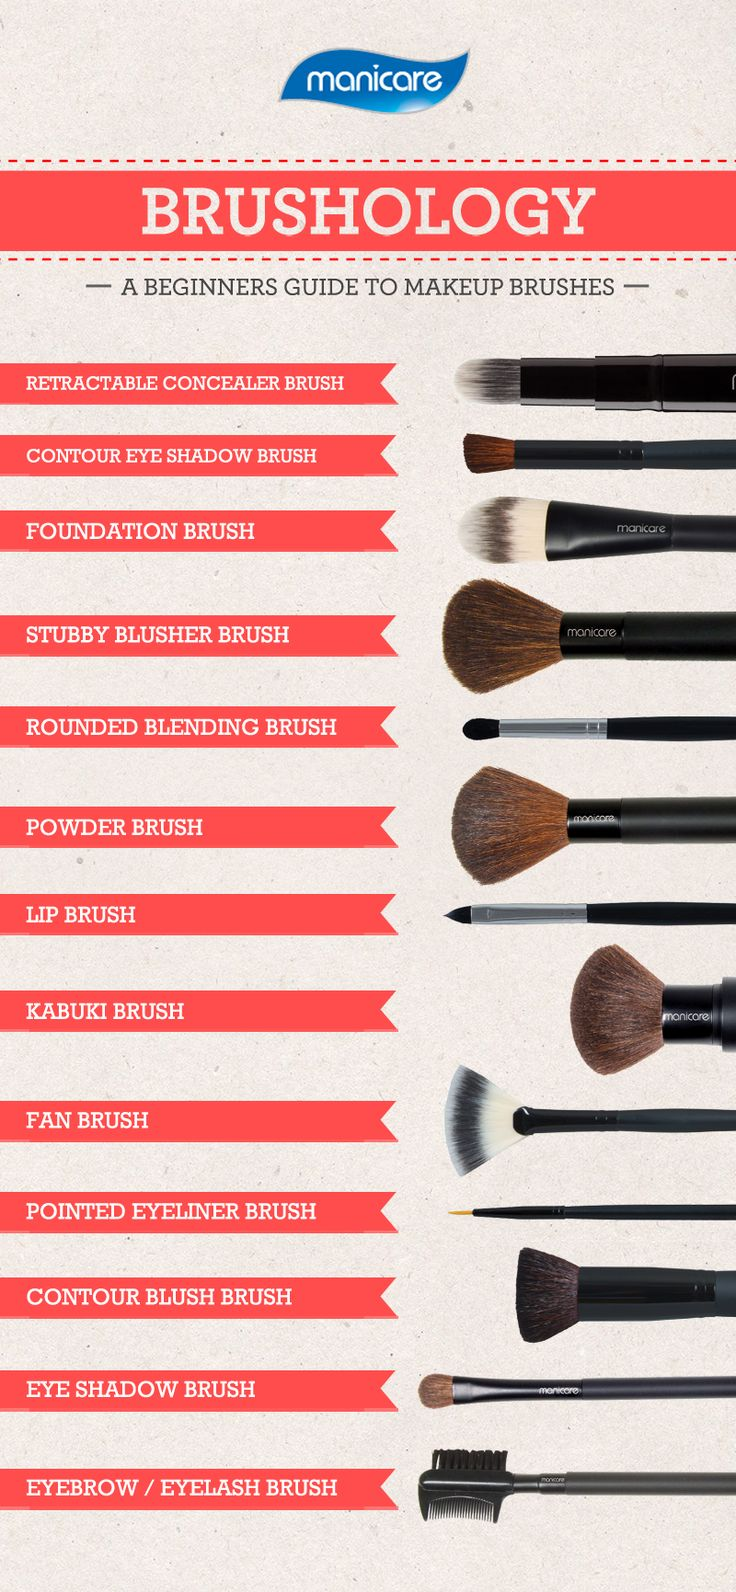 Brushology : The Beginners Guide To Makeup Brushes = The correct use for makeup brushes -> What brush does what ....